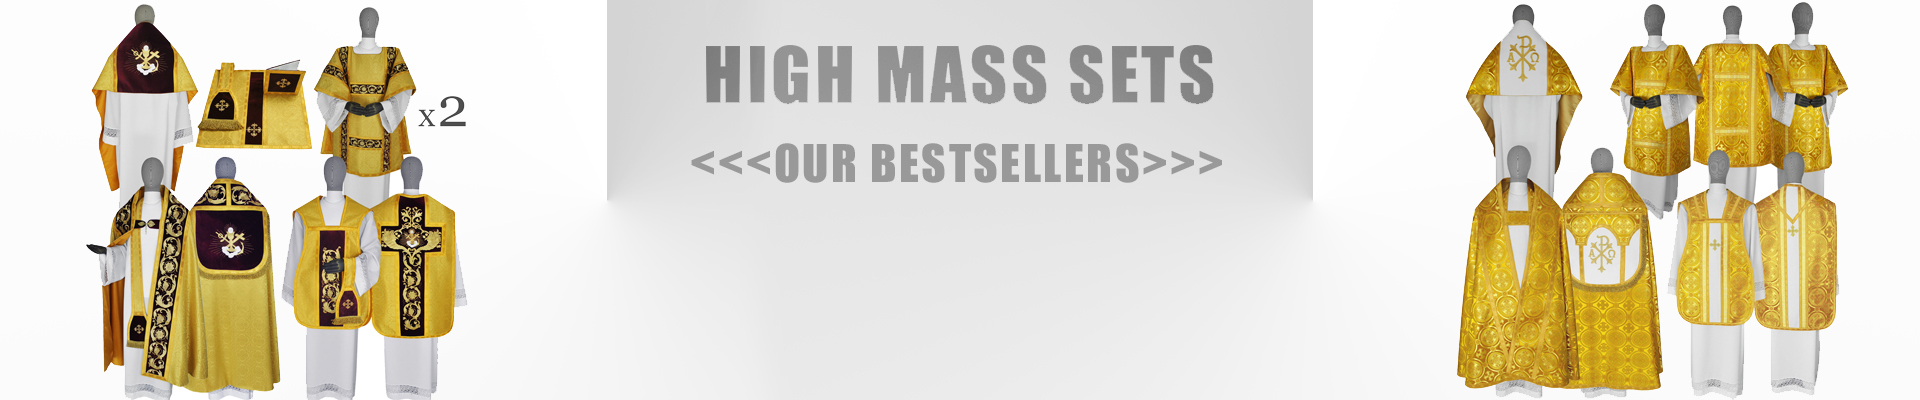 High Mass Sets